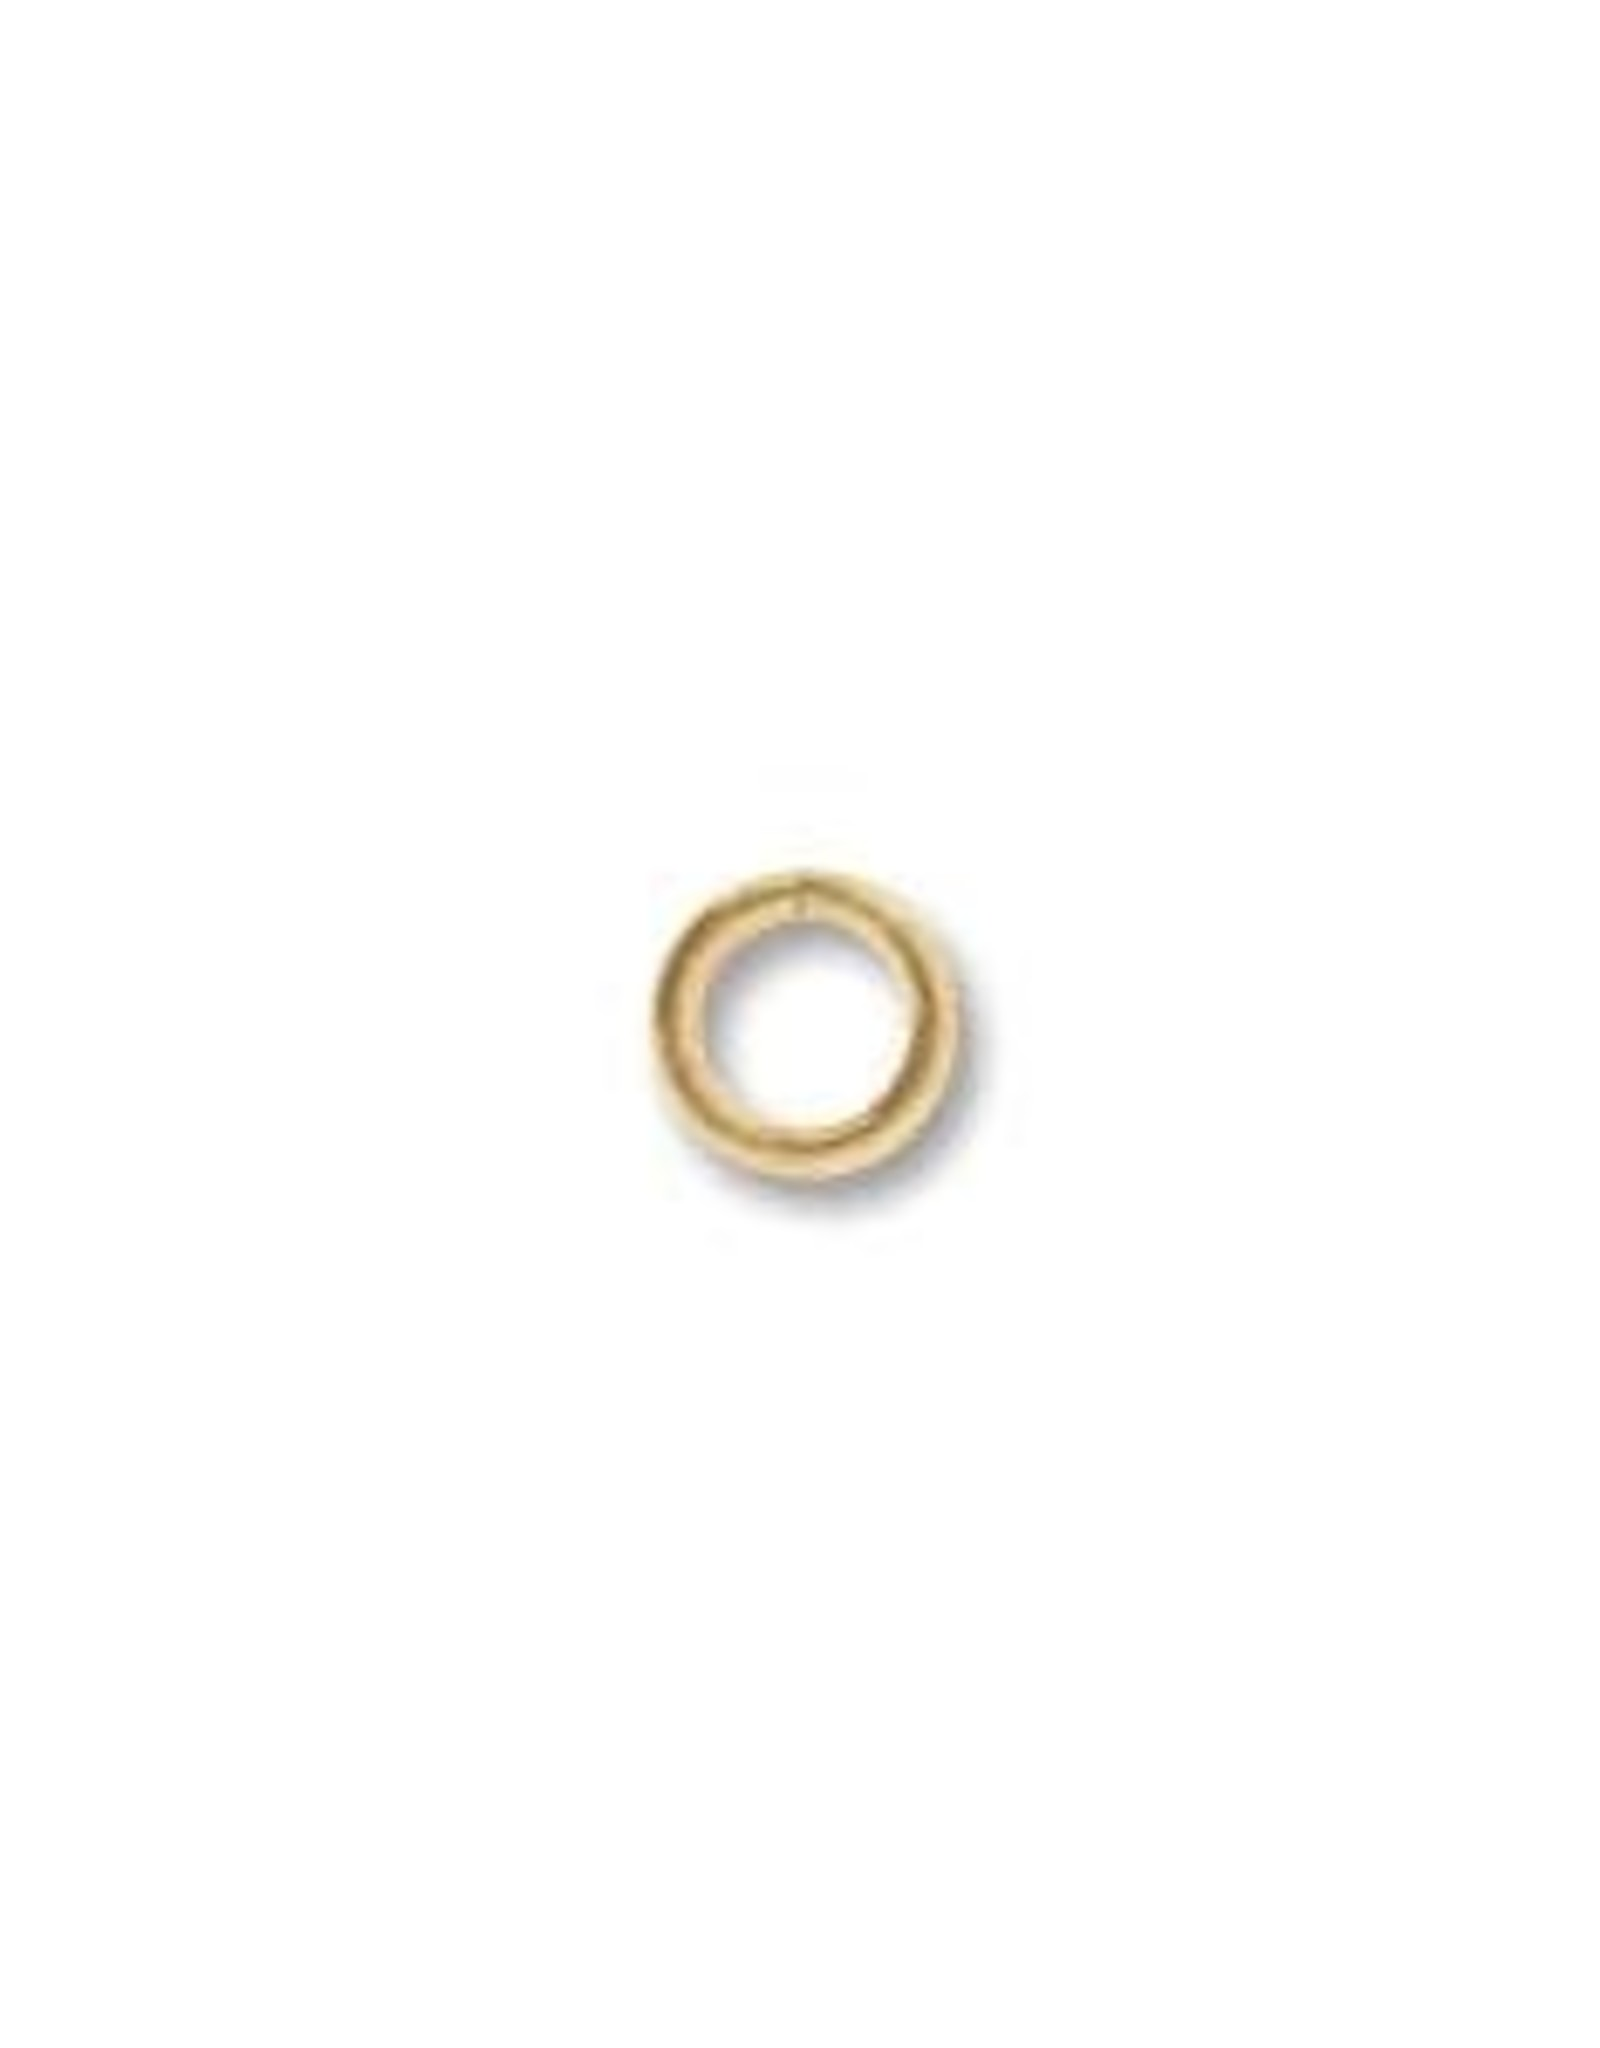 4mm Jump Ring 21ga Gold Plated Qty 144